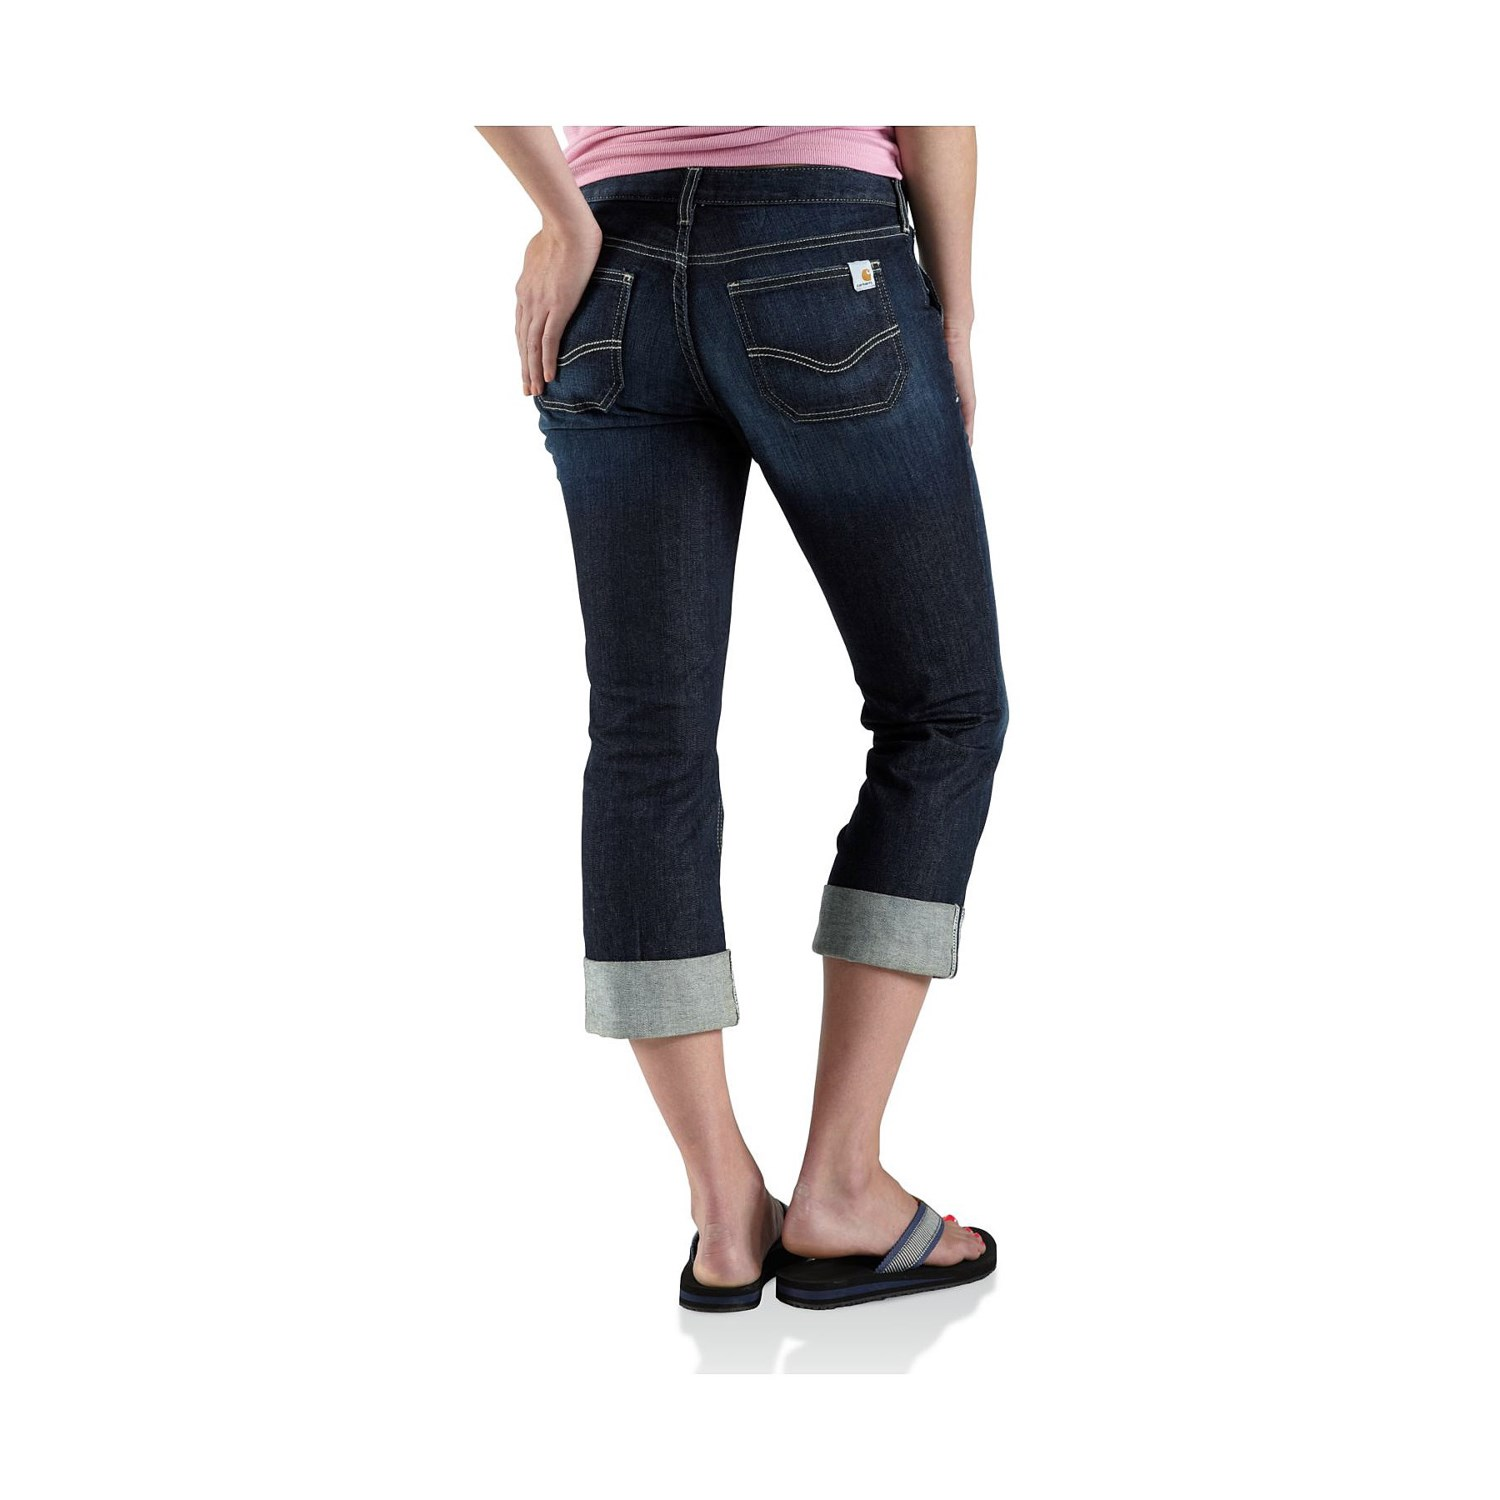 Women's Curvy Jeans. Buckle offers a variety of jeans in all washes, colors, styles and fits - including jeans for curvy women. Brands like BKE and Silver produce quality jeans to help you find your favorite fit. Our curvy women's jeans are a key piece in any wardrobe.